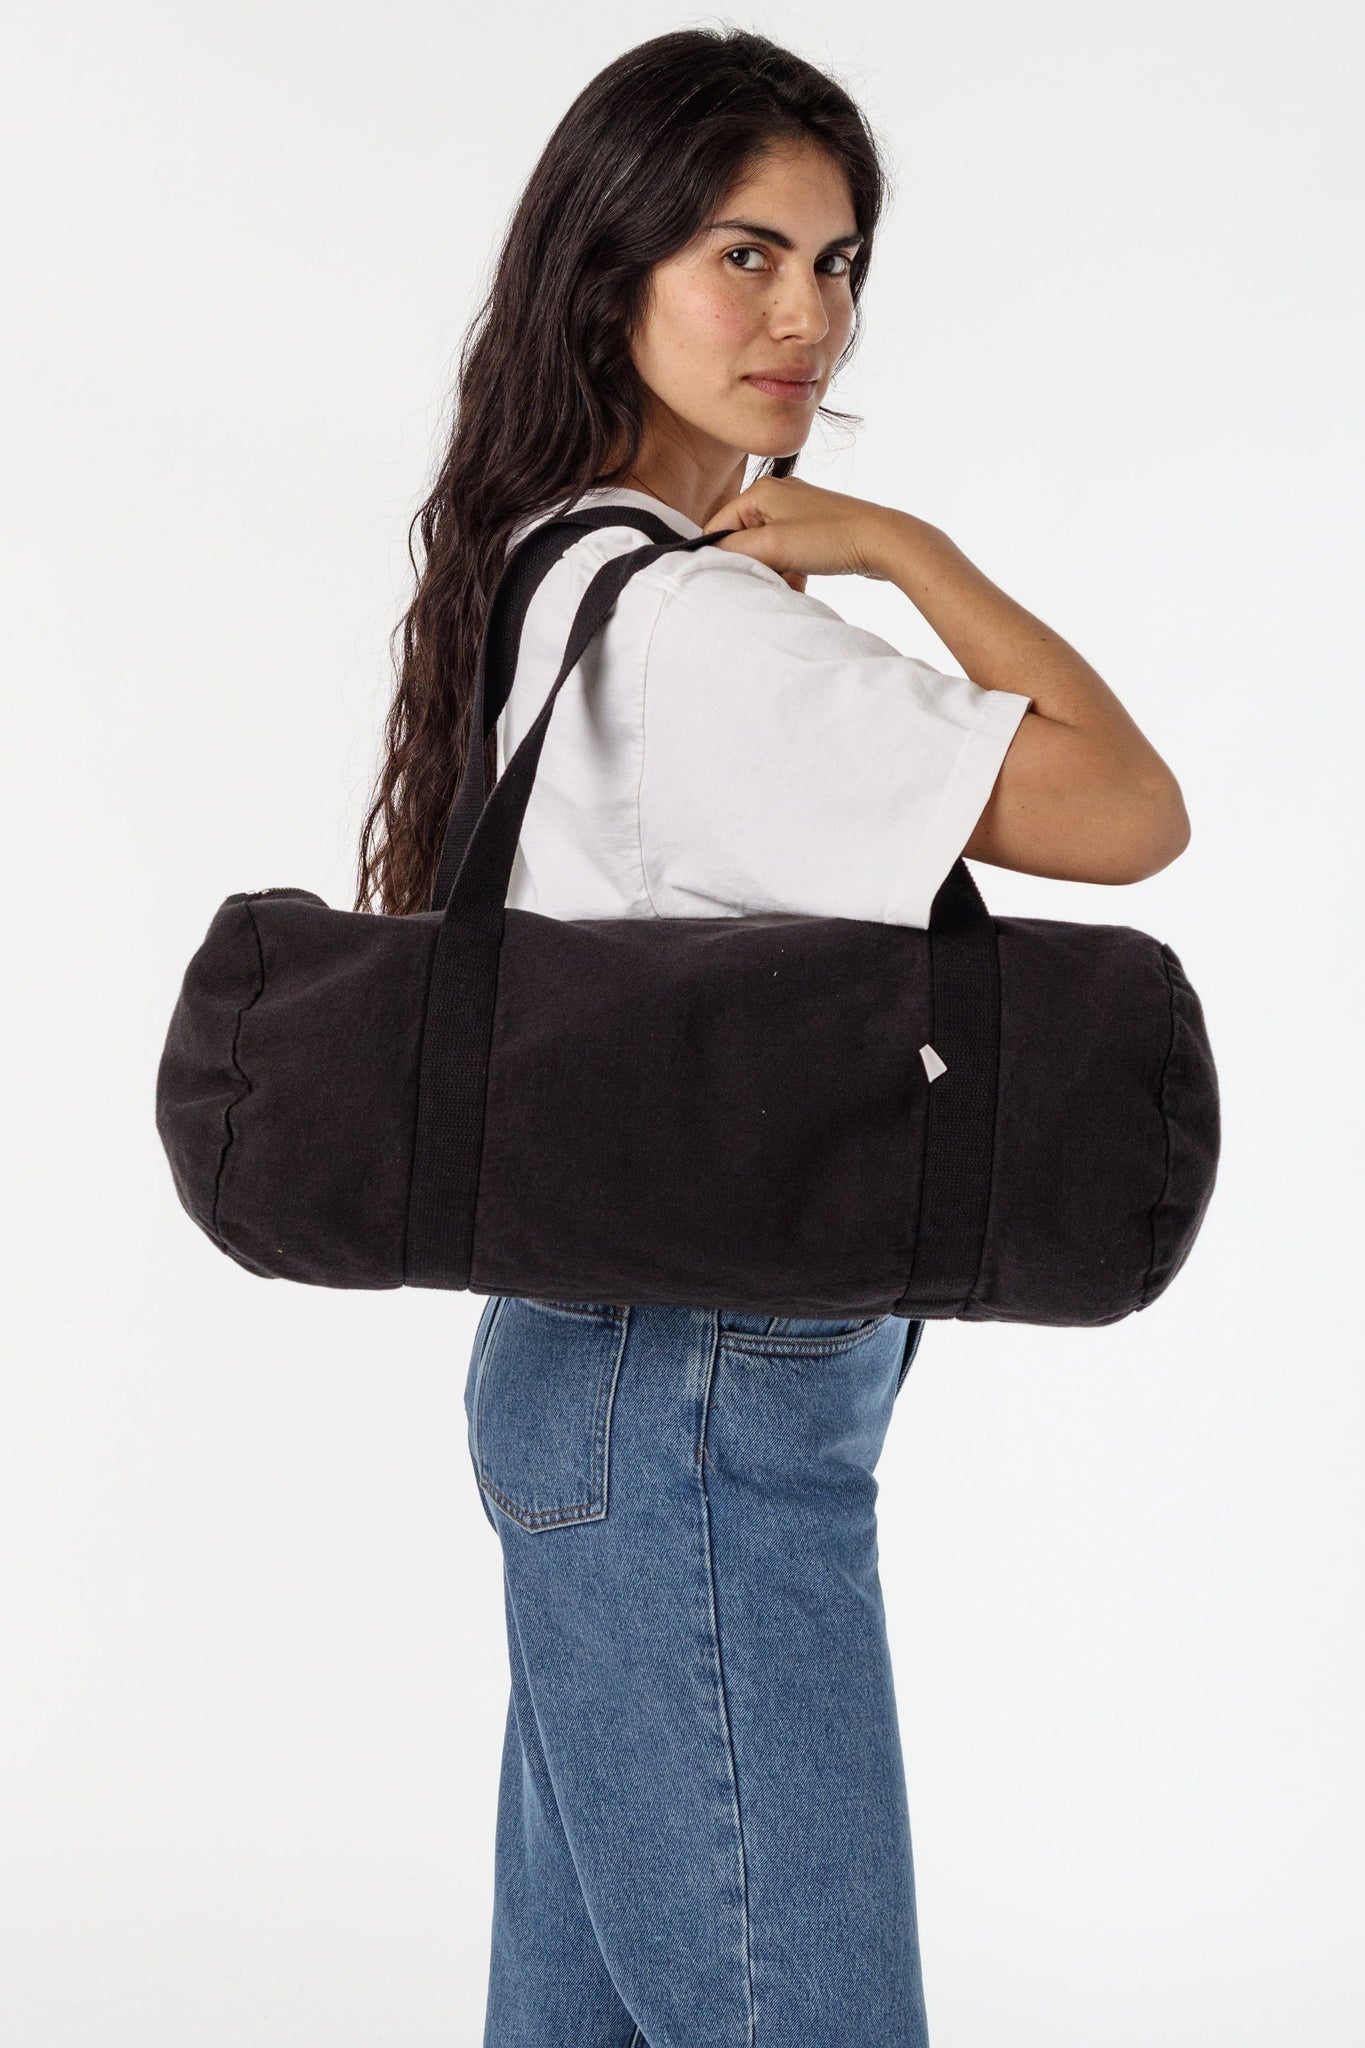 BD05 - Bull Denim Gym Bag